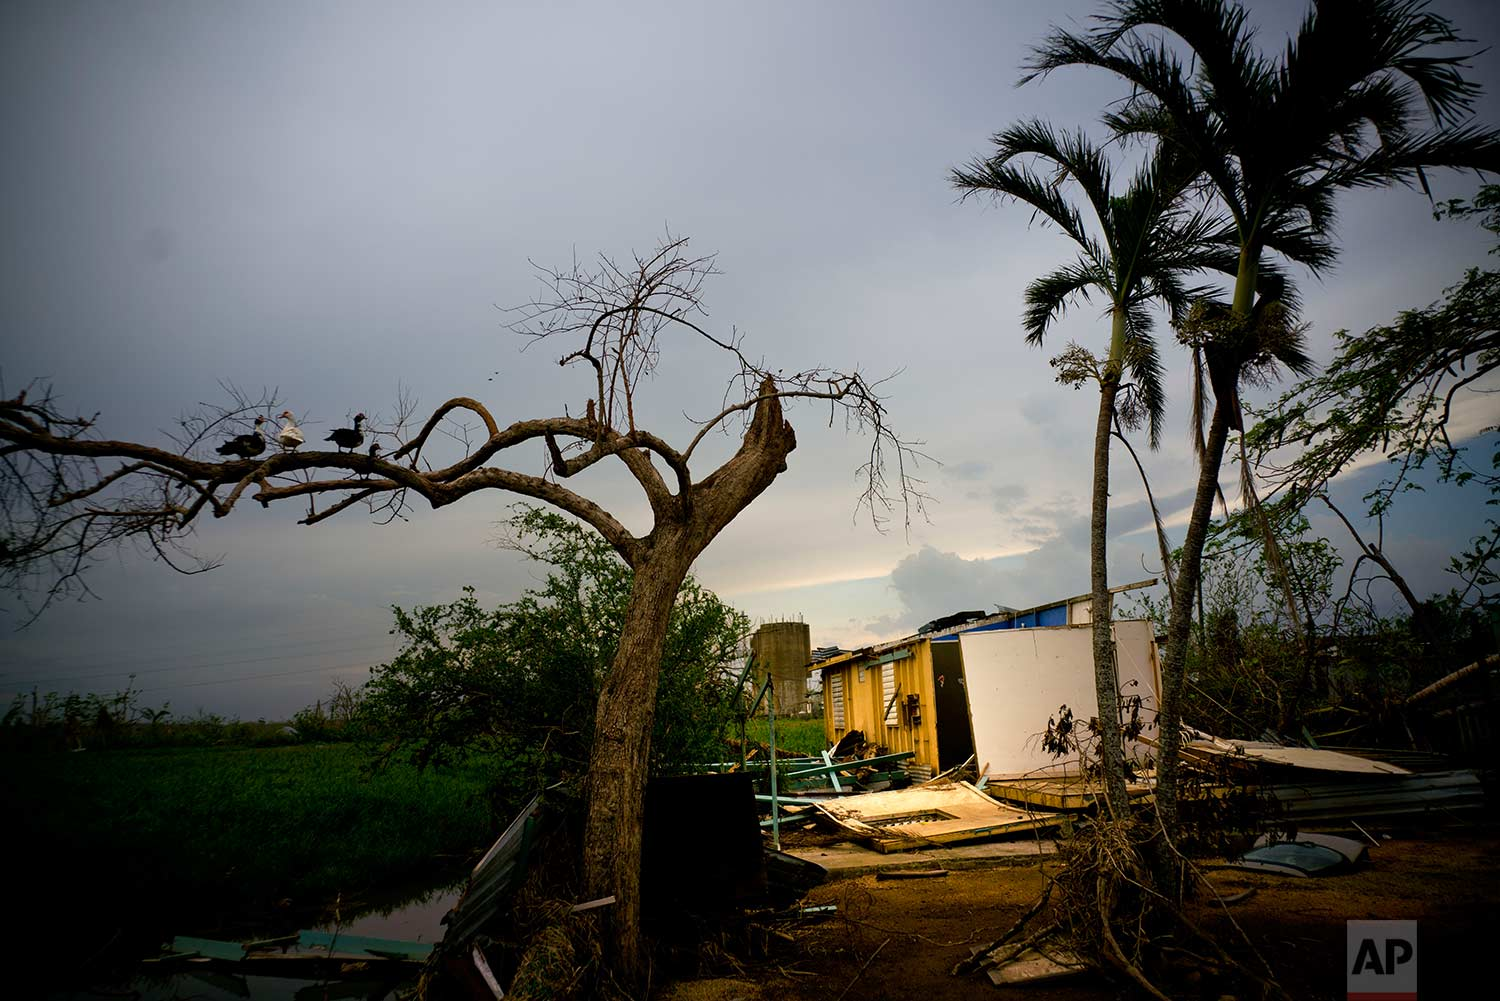 Ducks perch on the branch of a tree next to a home destroyed by Hurricane Maria in Toa Baja, Puerto Rico, Thursday, Oct. 12, 2017. (AP Photo/Ramon Espinosa)